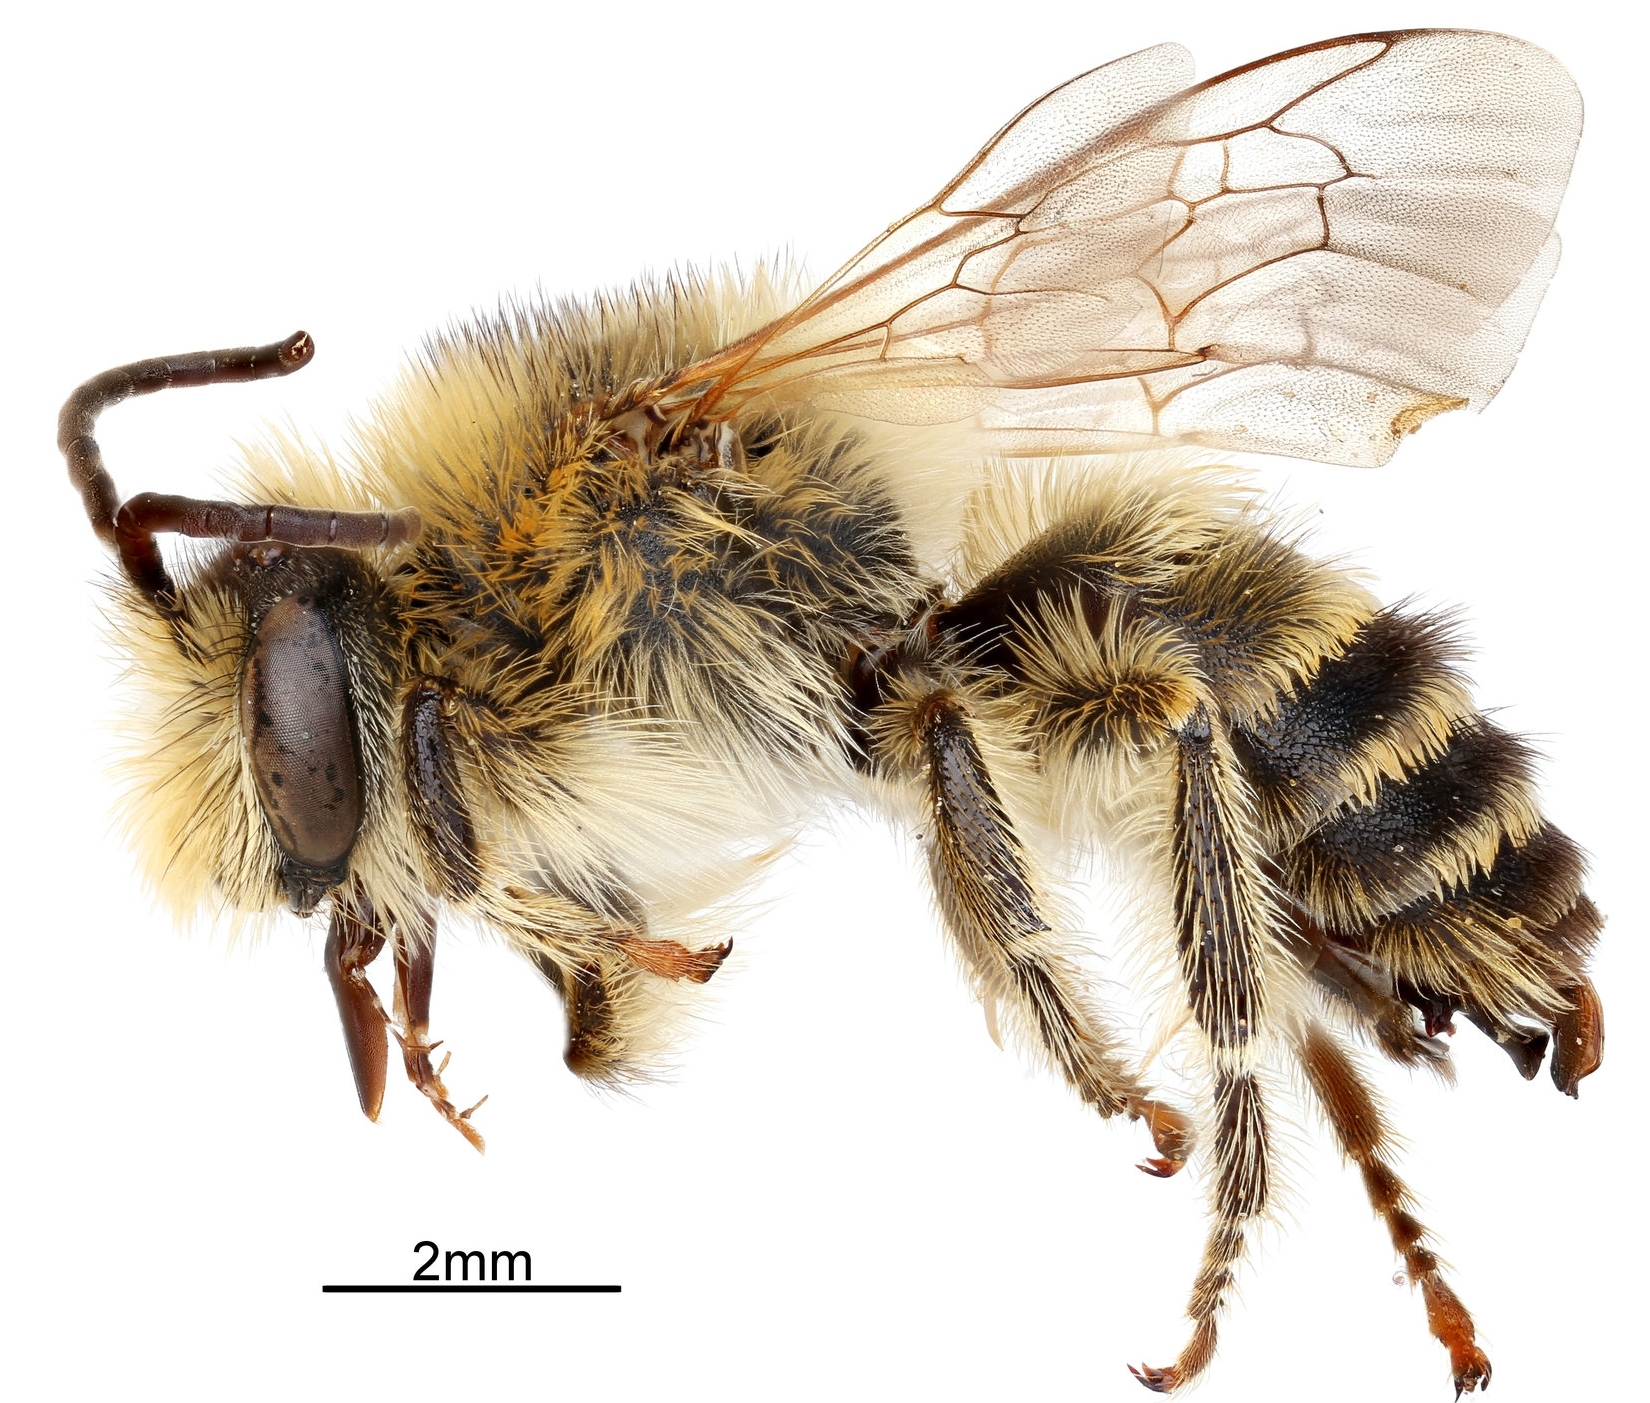 Melitta leporina - A male of Melitta leporina. This bee belongs to the bee family Melittidae, which are host-plant specialists. M. leporina exclusively collects pollen from legumes flowers (Fabaceae).